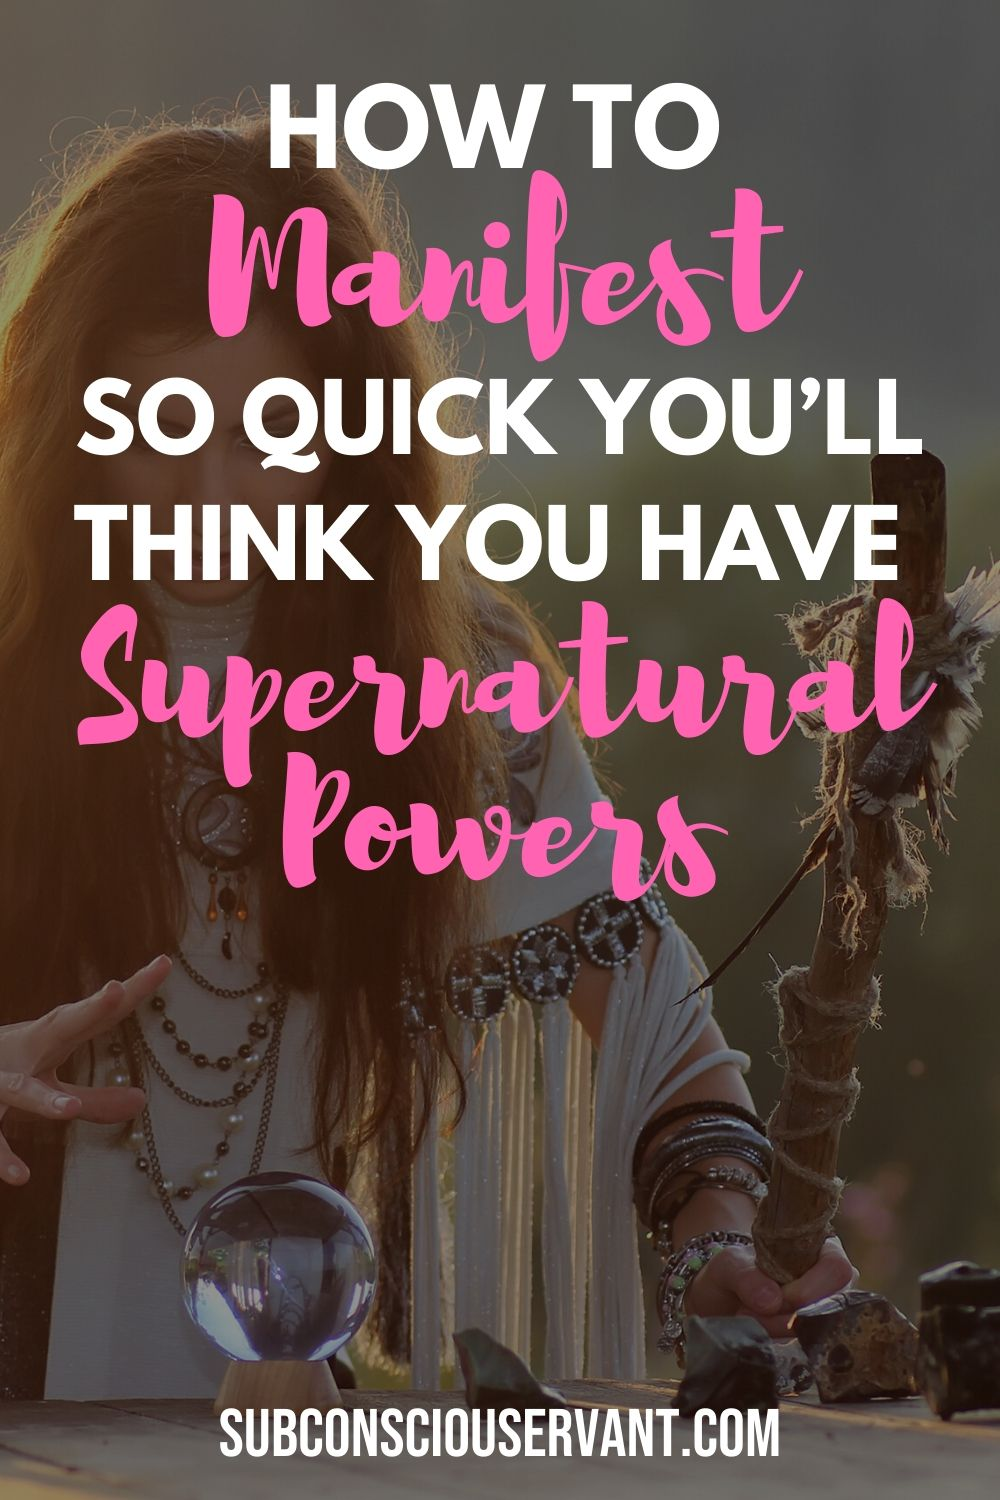 How to manifest so quick you\'ll think you have supernatural manifesting powers. Here are the 6 steps to lightning-fast manifestations.  #Manifesting #Manifestingdreams #Manifestingmiracles #LOA #LawOfAttraction